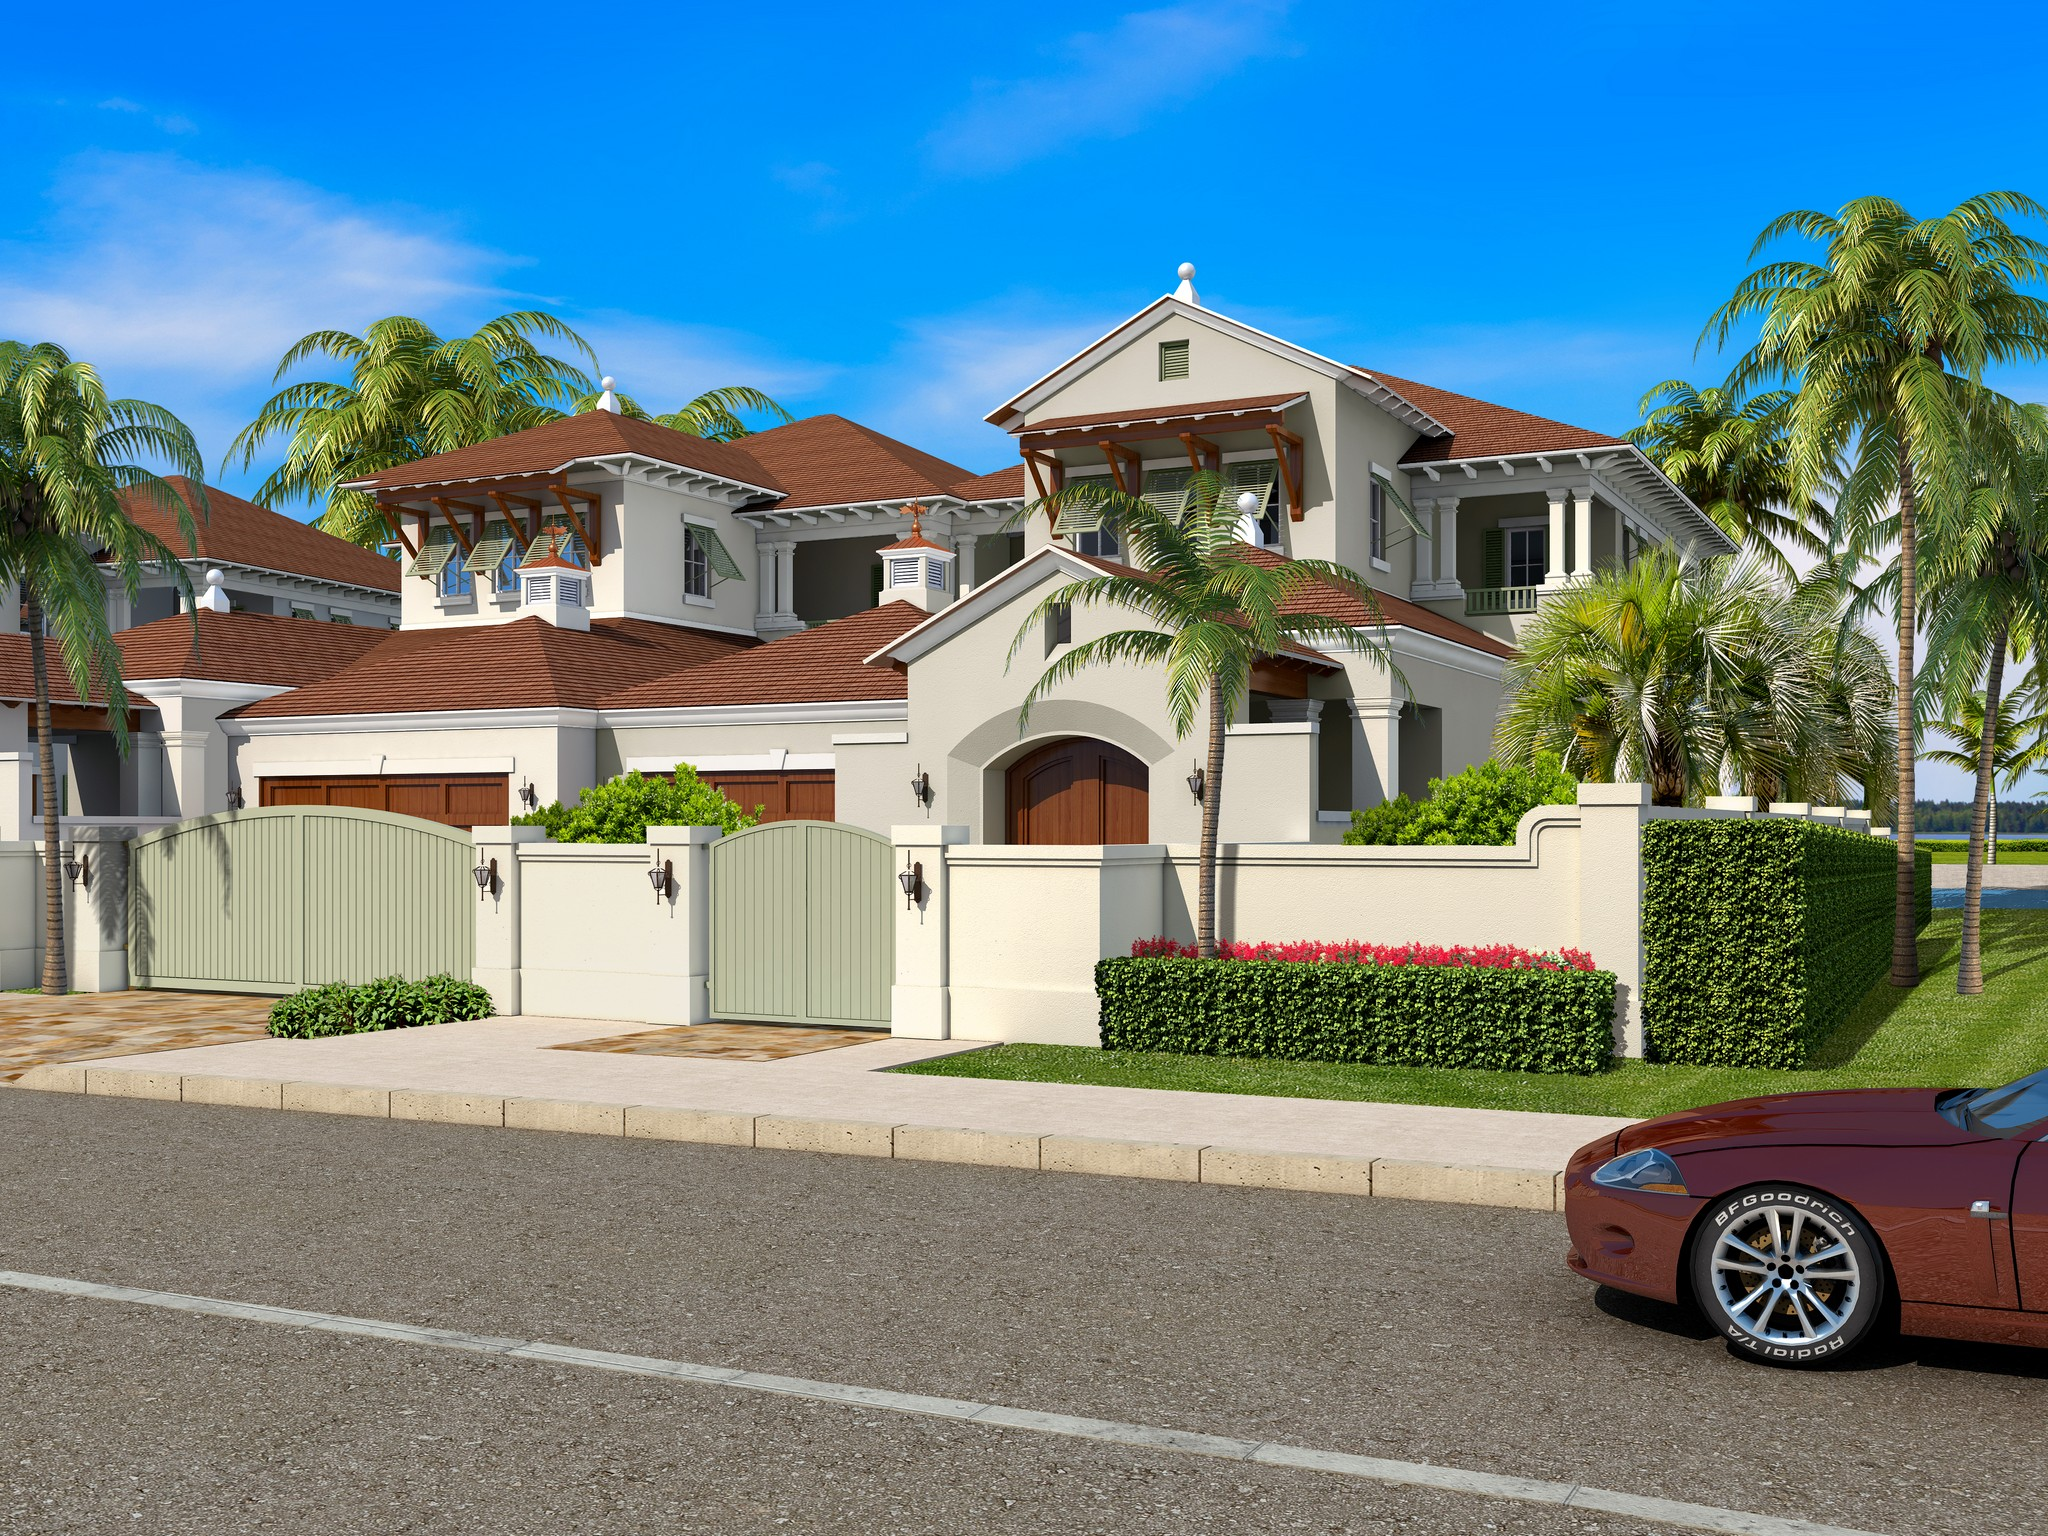 Villetta a schiera per Vendita alle ore Luxurious Riverfront Townhome on Royal Palm Pointe 21-A Royal Palm Pointe Vero Beach, Florida, 32960 Stati Uniti